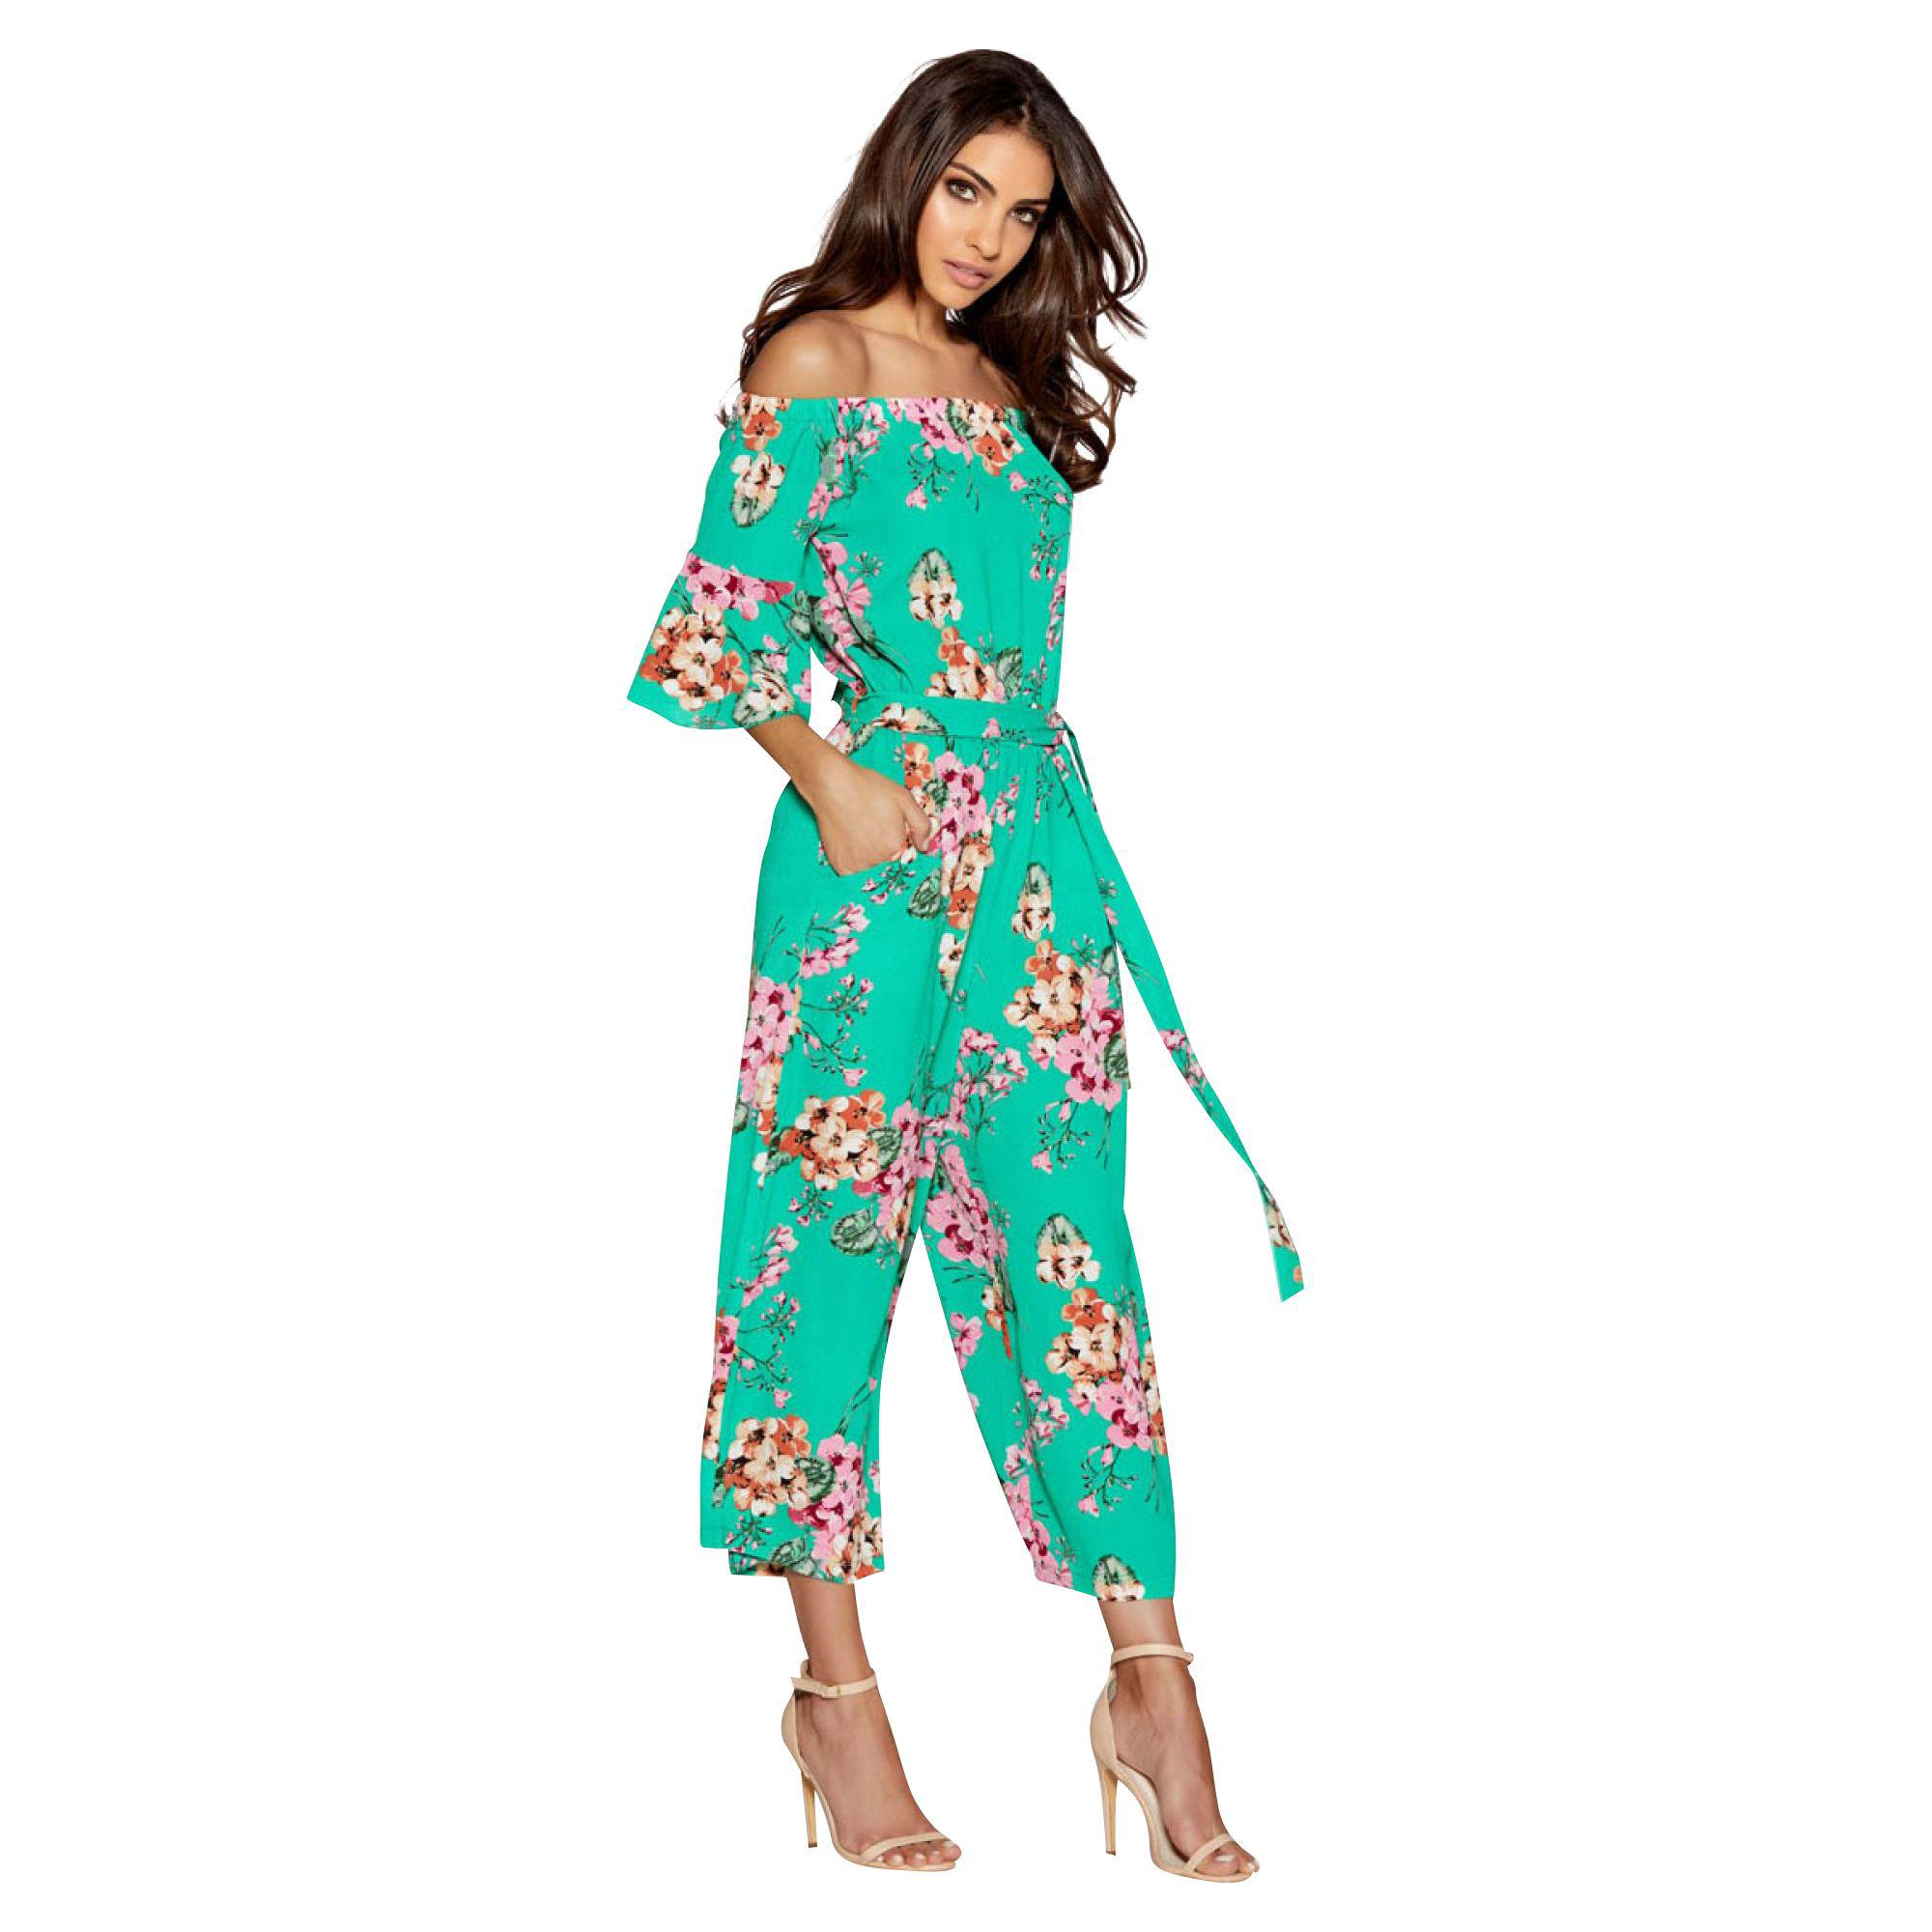 2699020a0b32 Quiz Green And Pink Floral Print Frill Sleeve Culotte Jumpsuit in ...